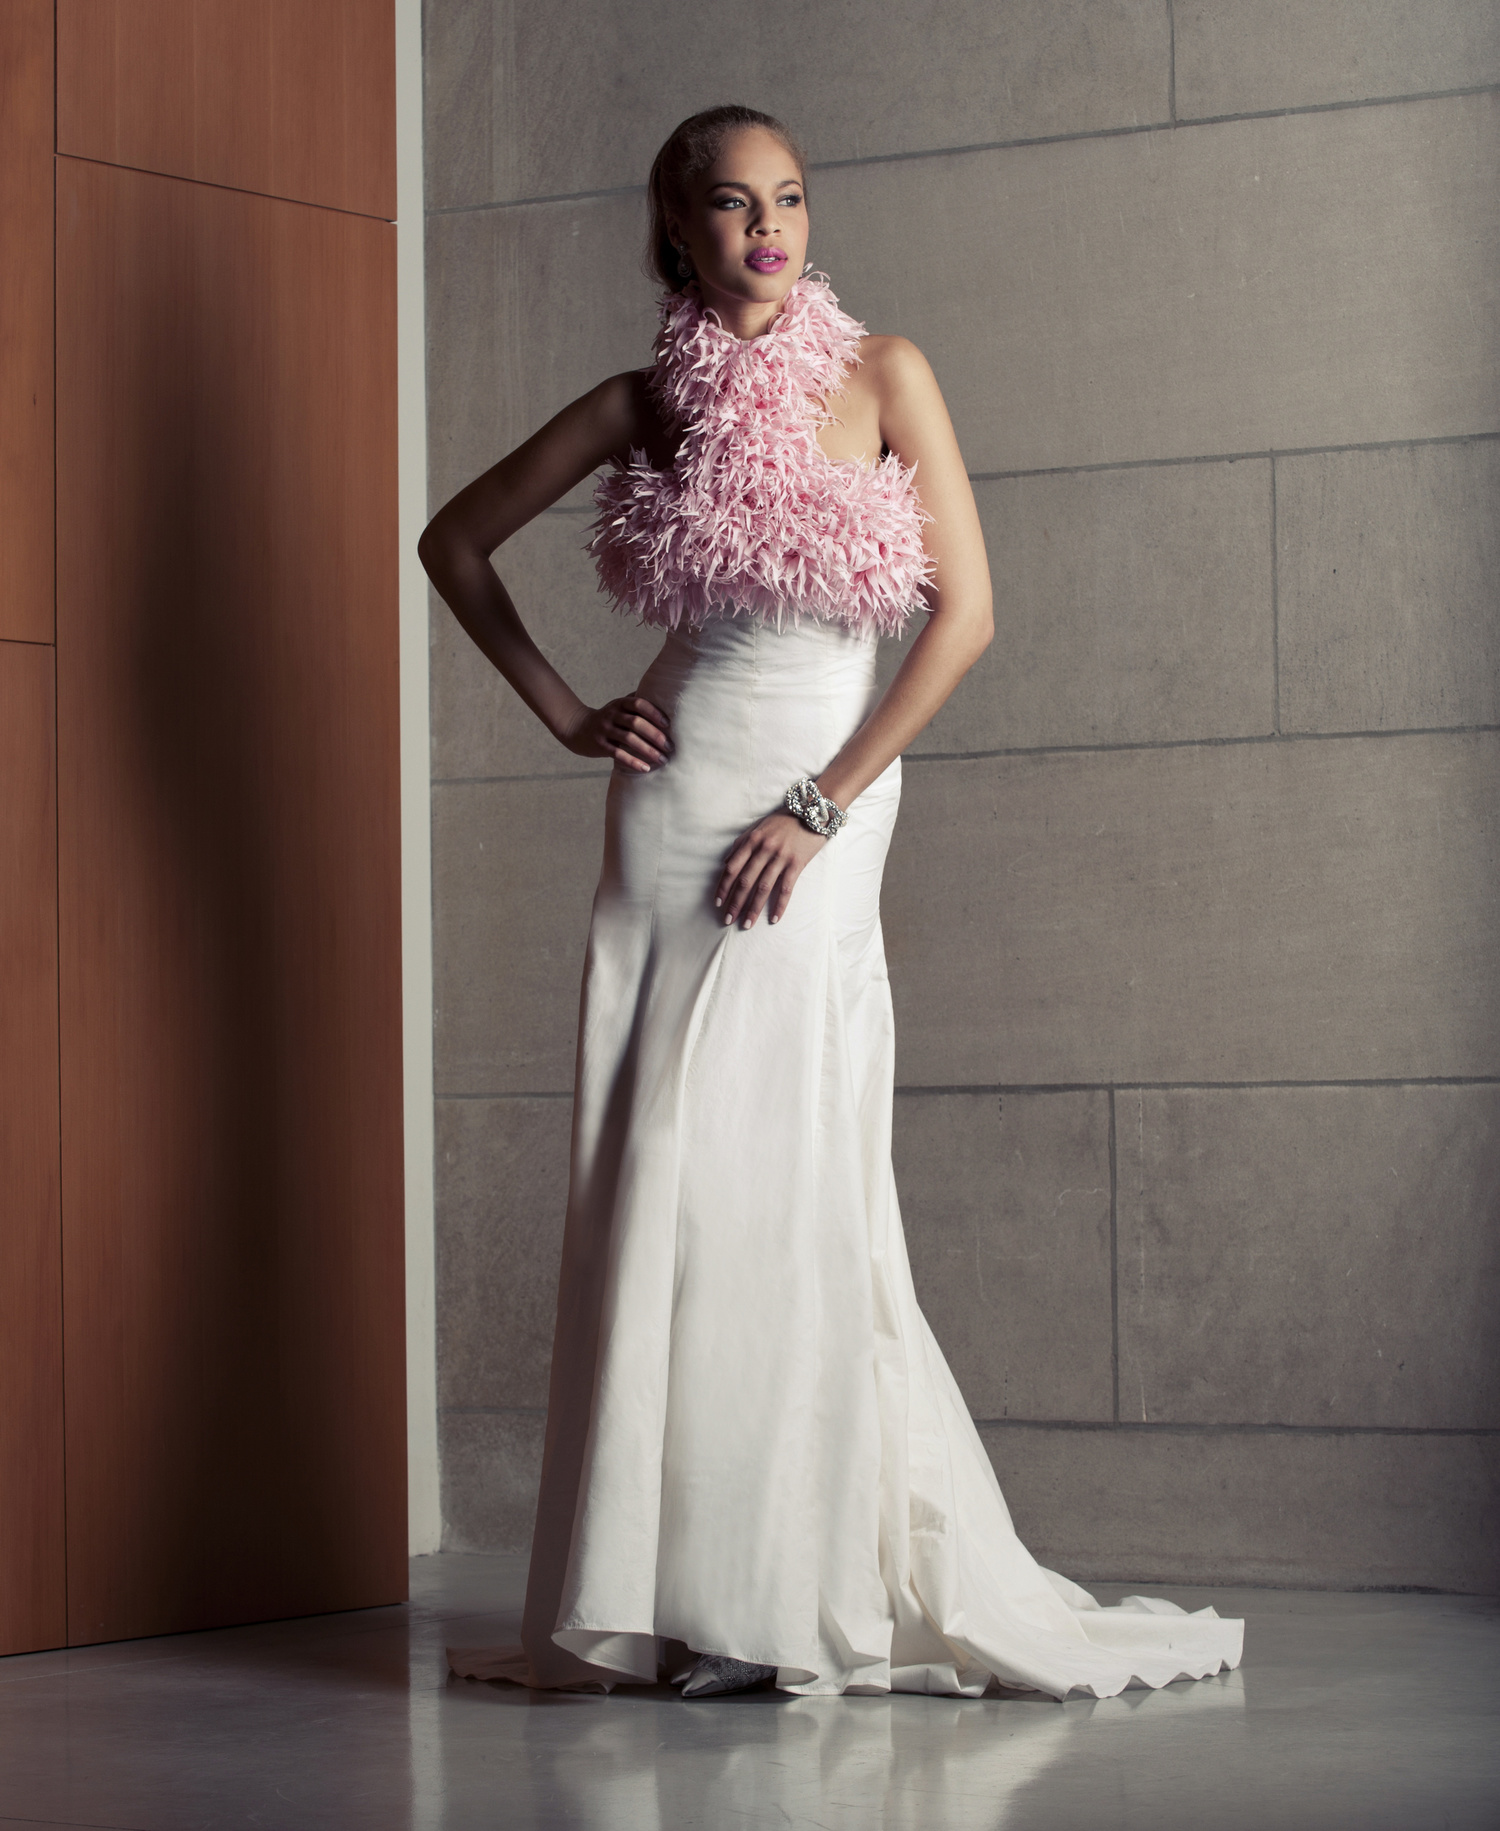 White-Cashmere-Collection-2013-Duy-Nguyen-Photographer-Caitlin-Cronenberg.jpg